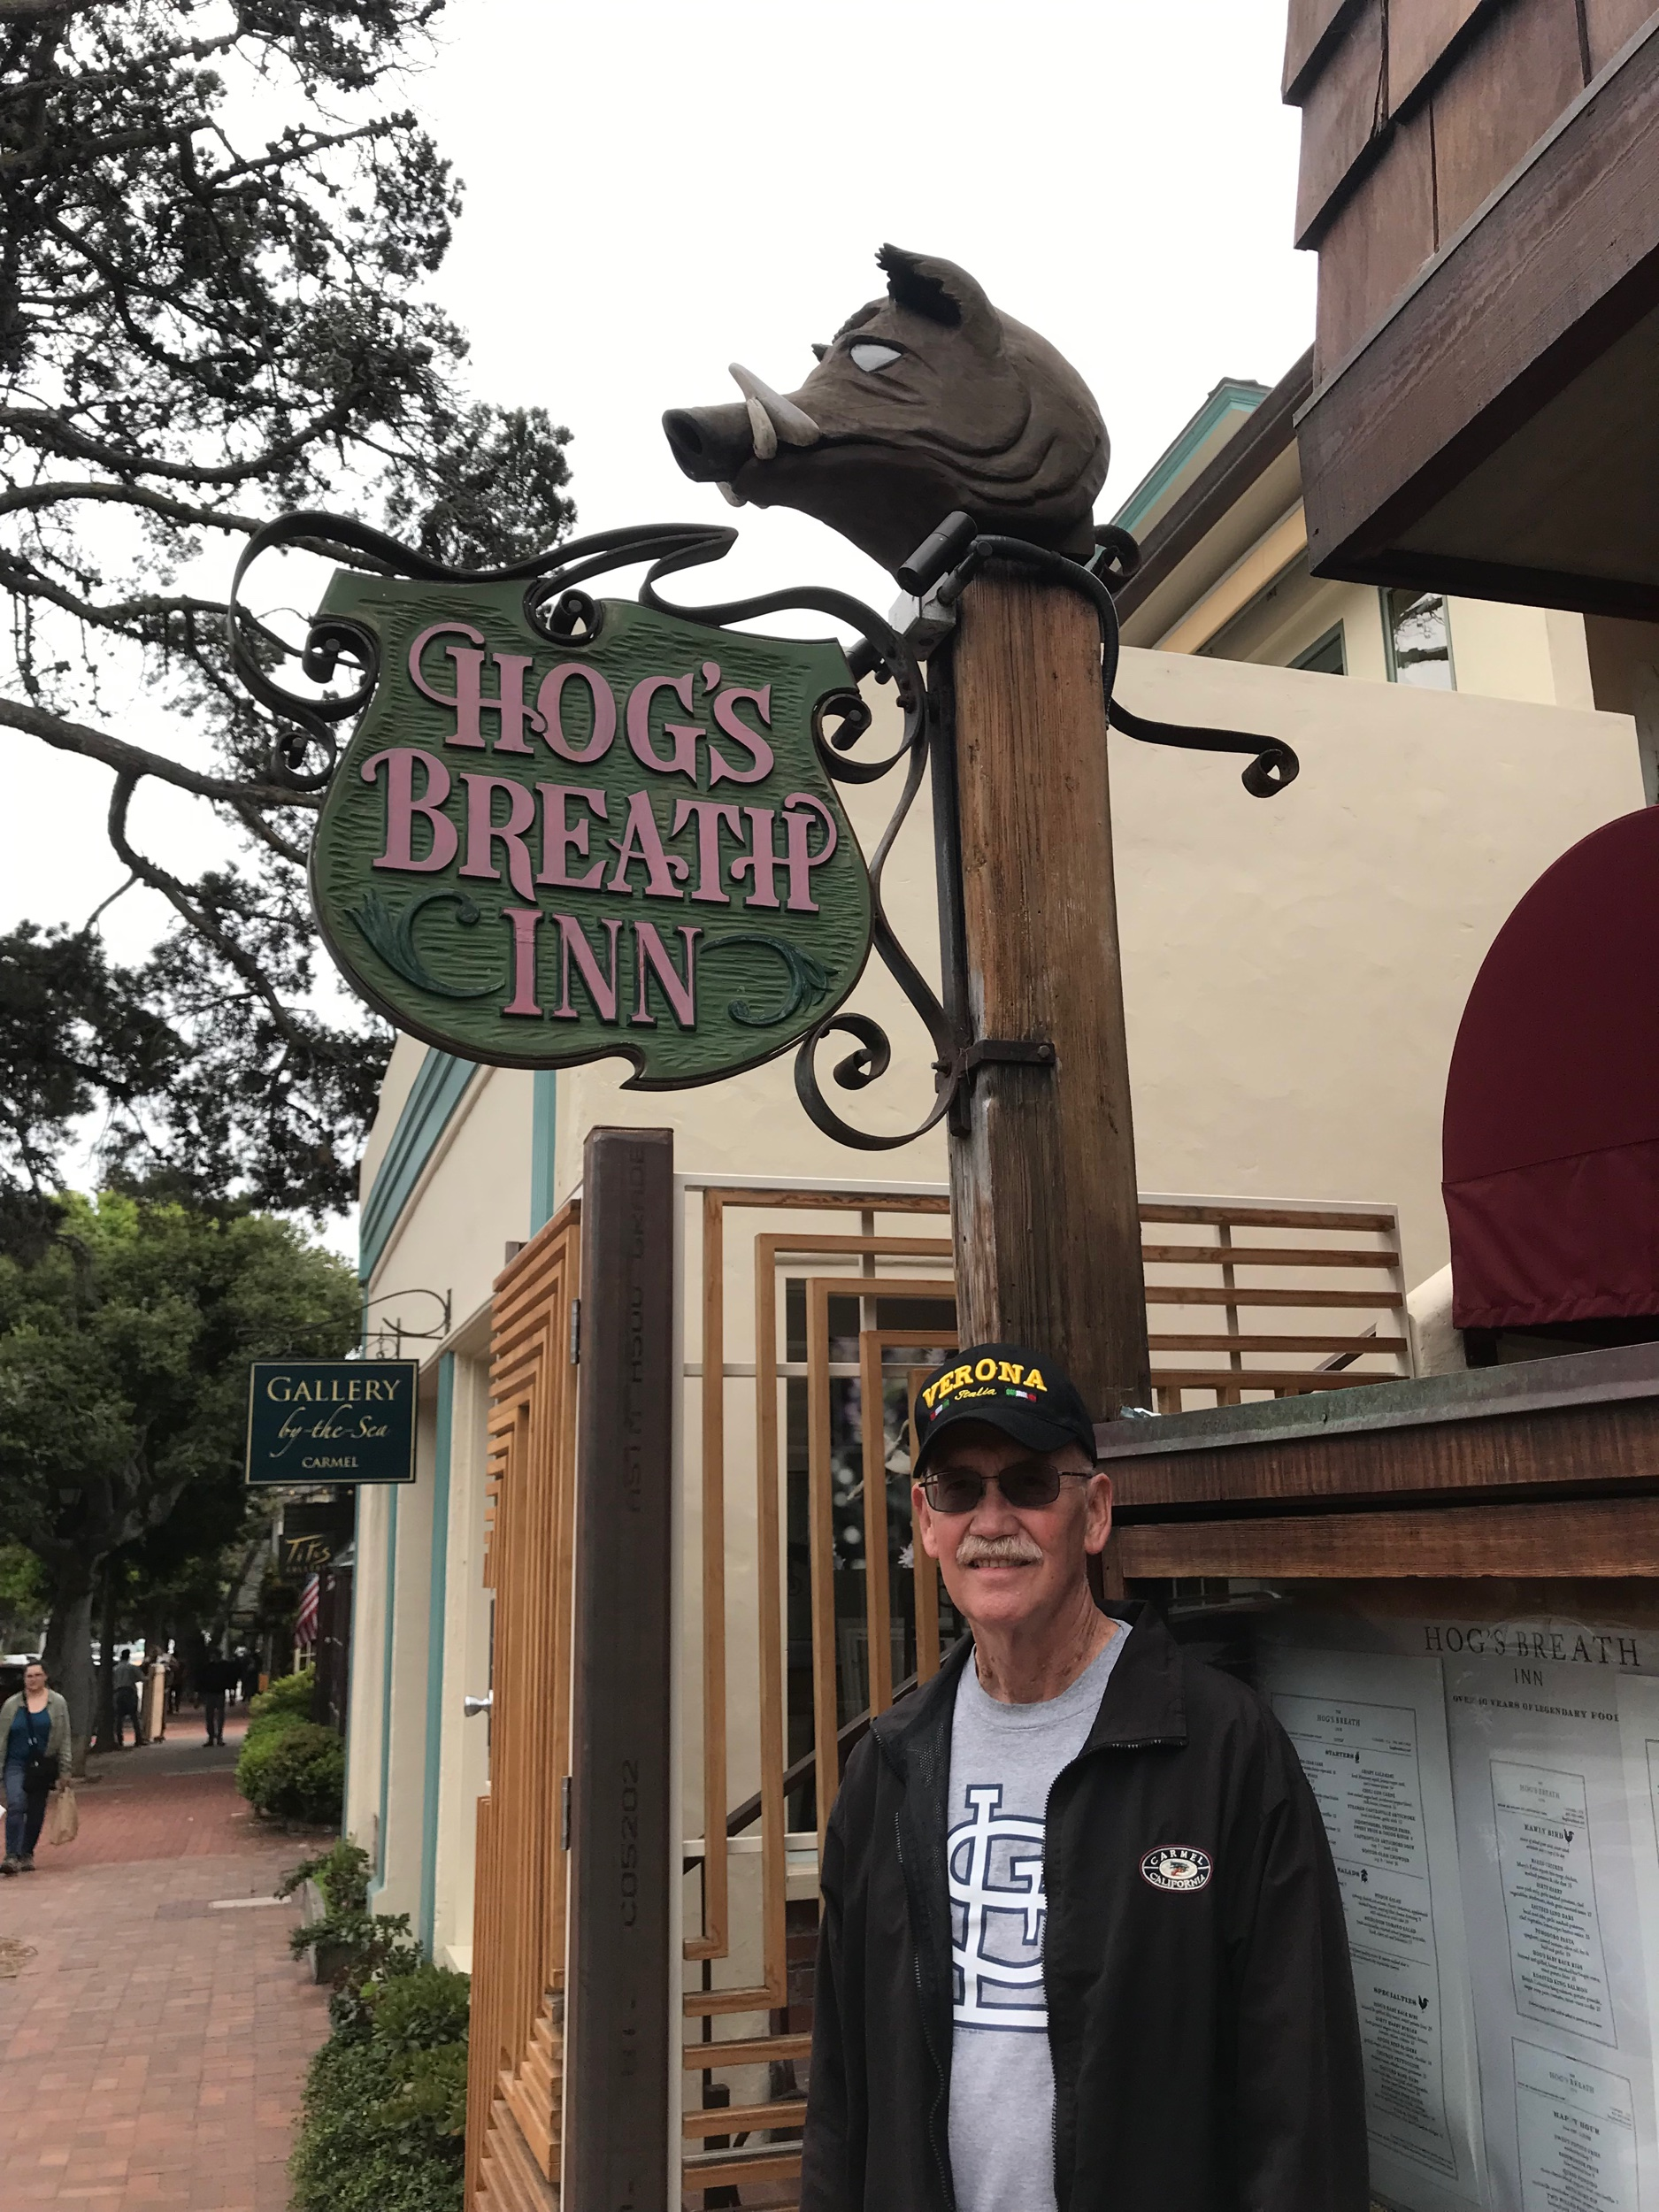 Clint Eastwood's Hog's Breath Bar & Grill